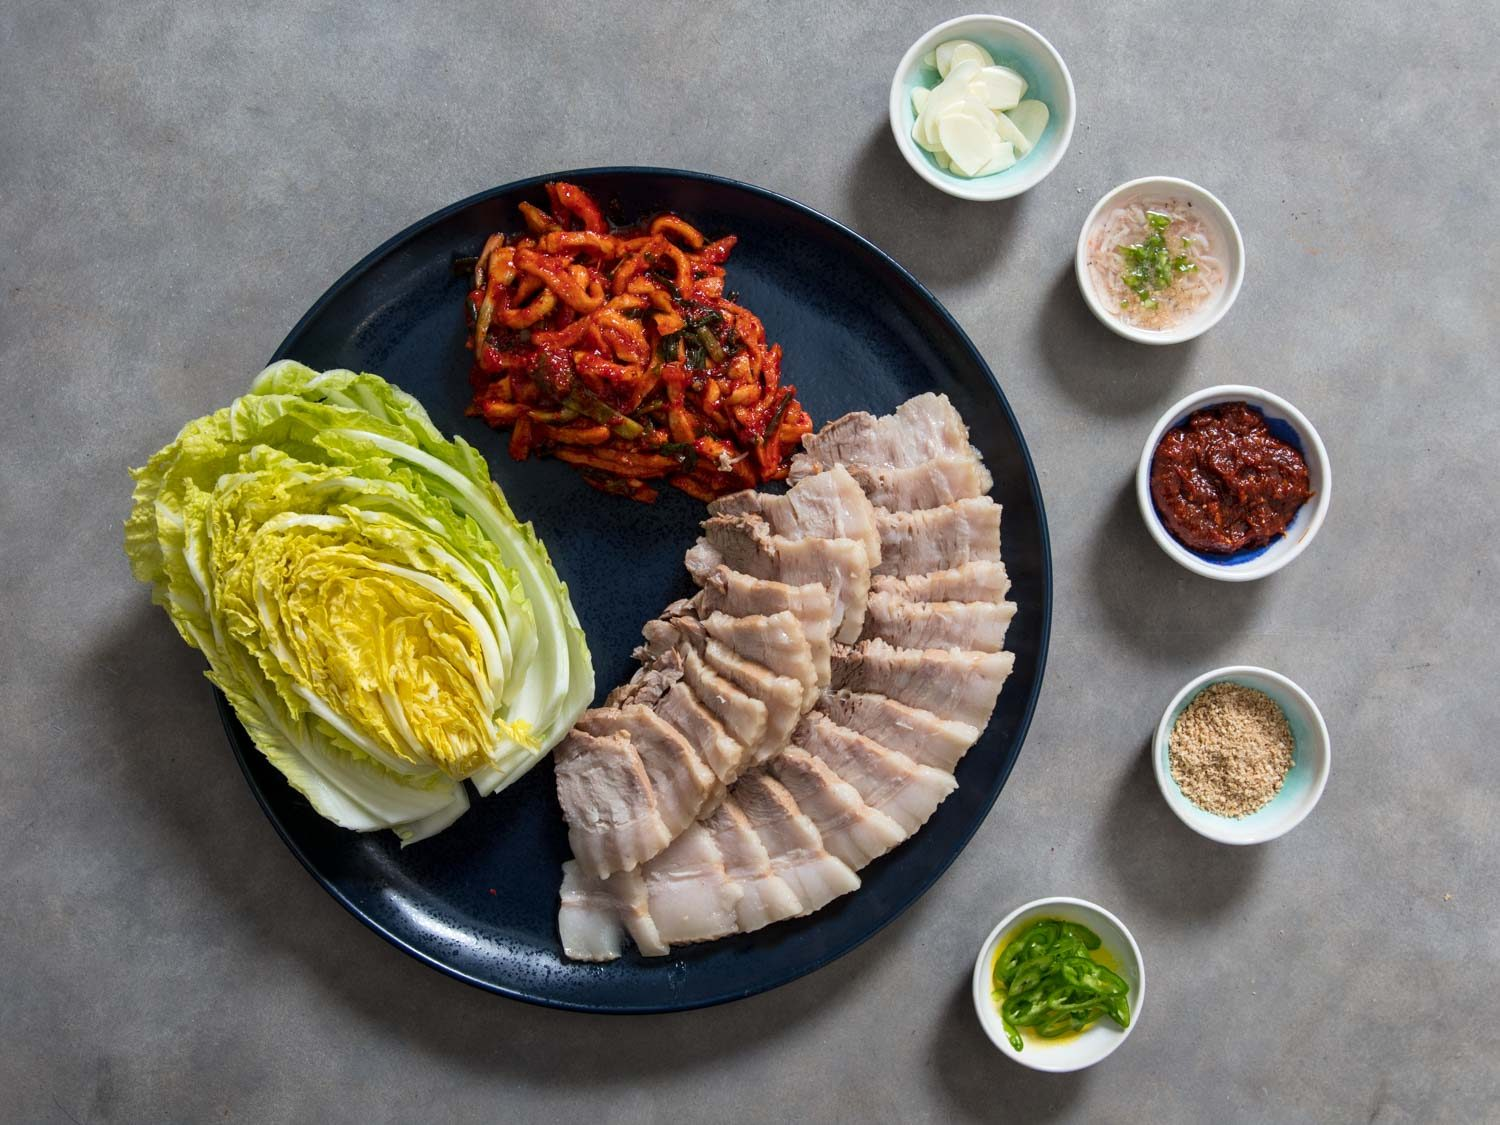 Bossam (Korean Boiled-Pork Wraps)